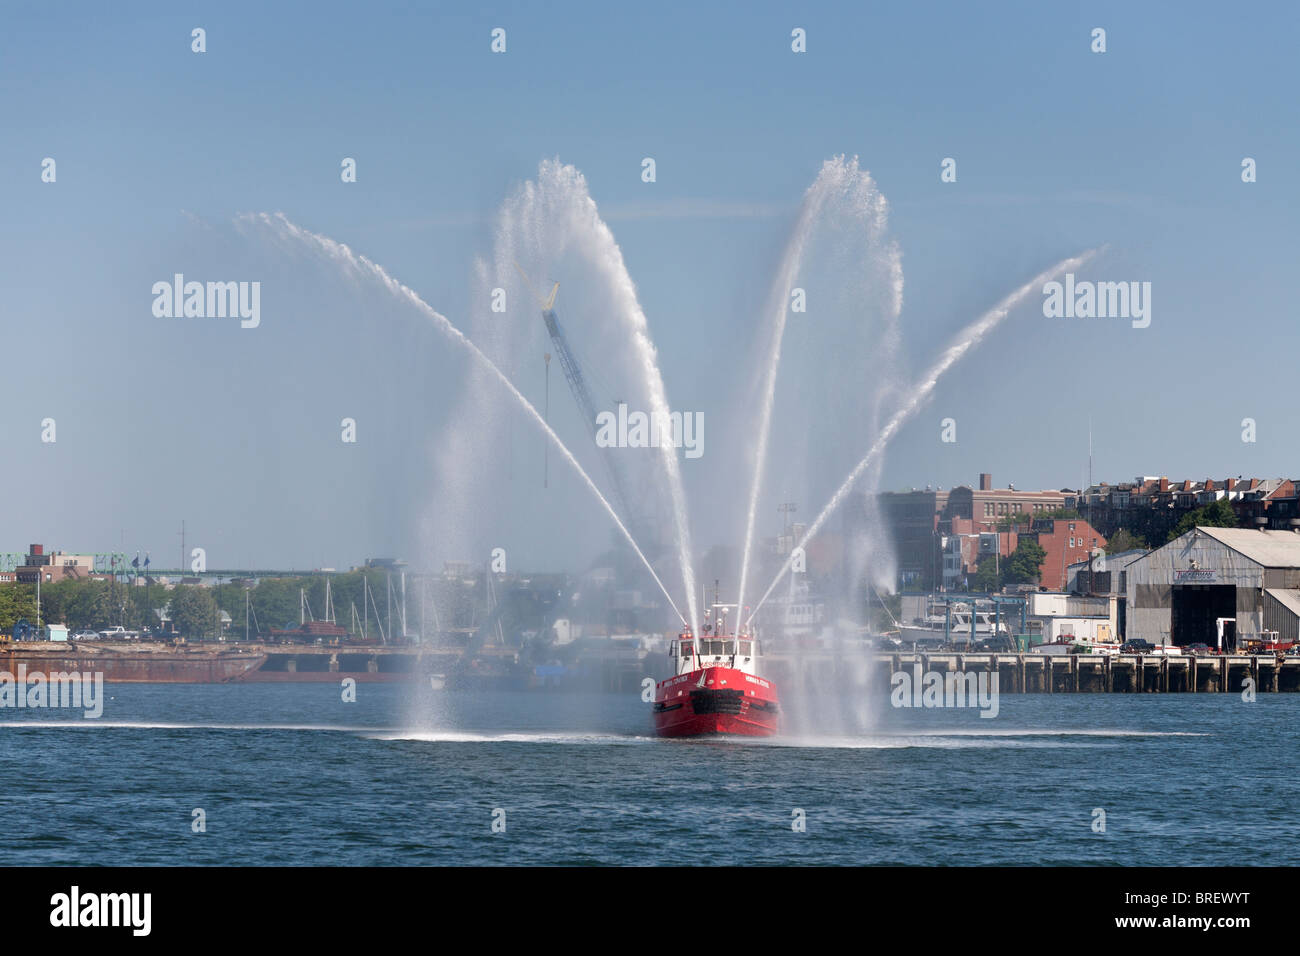 Massport fire boat #1 water display. The Howard W. Fitzpatrick a fire fighting tug boat puts on a watery display - Stock Image